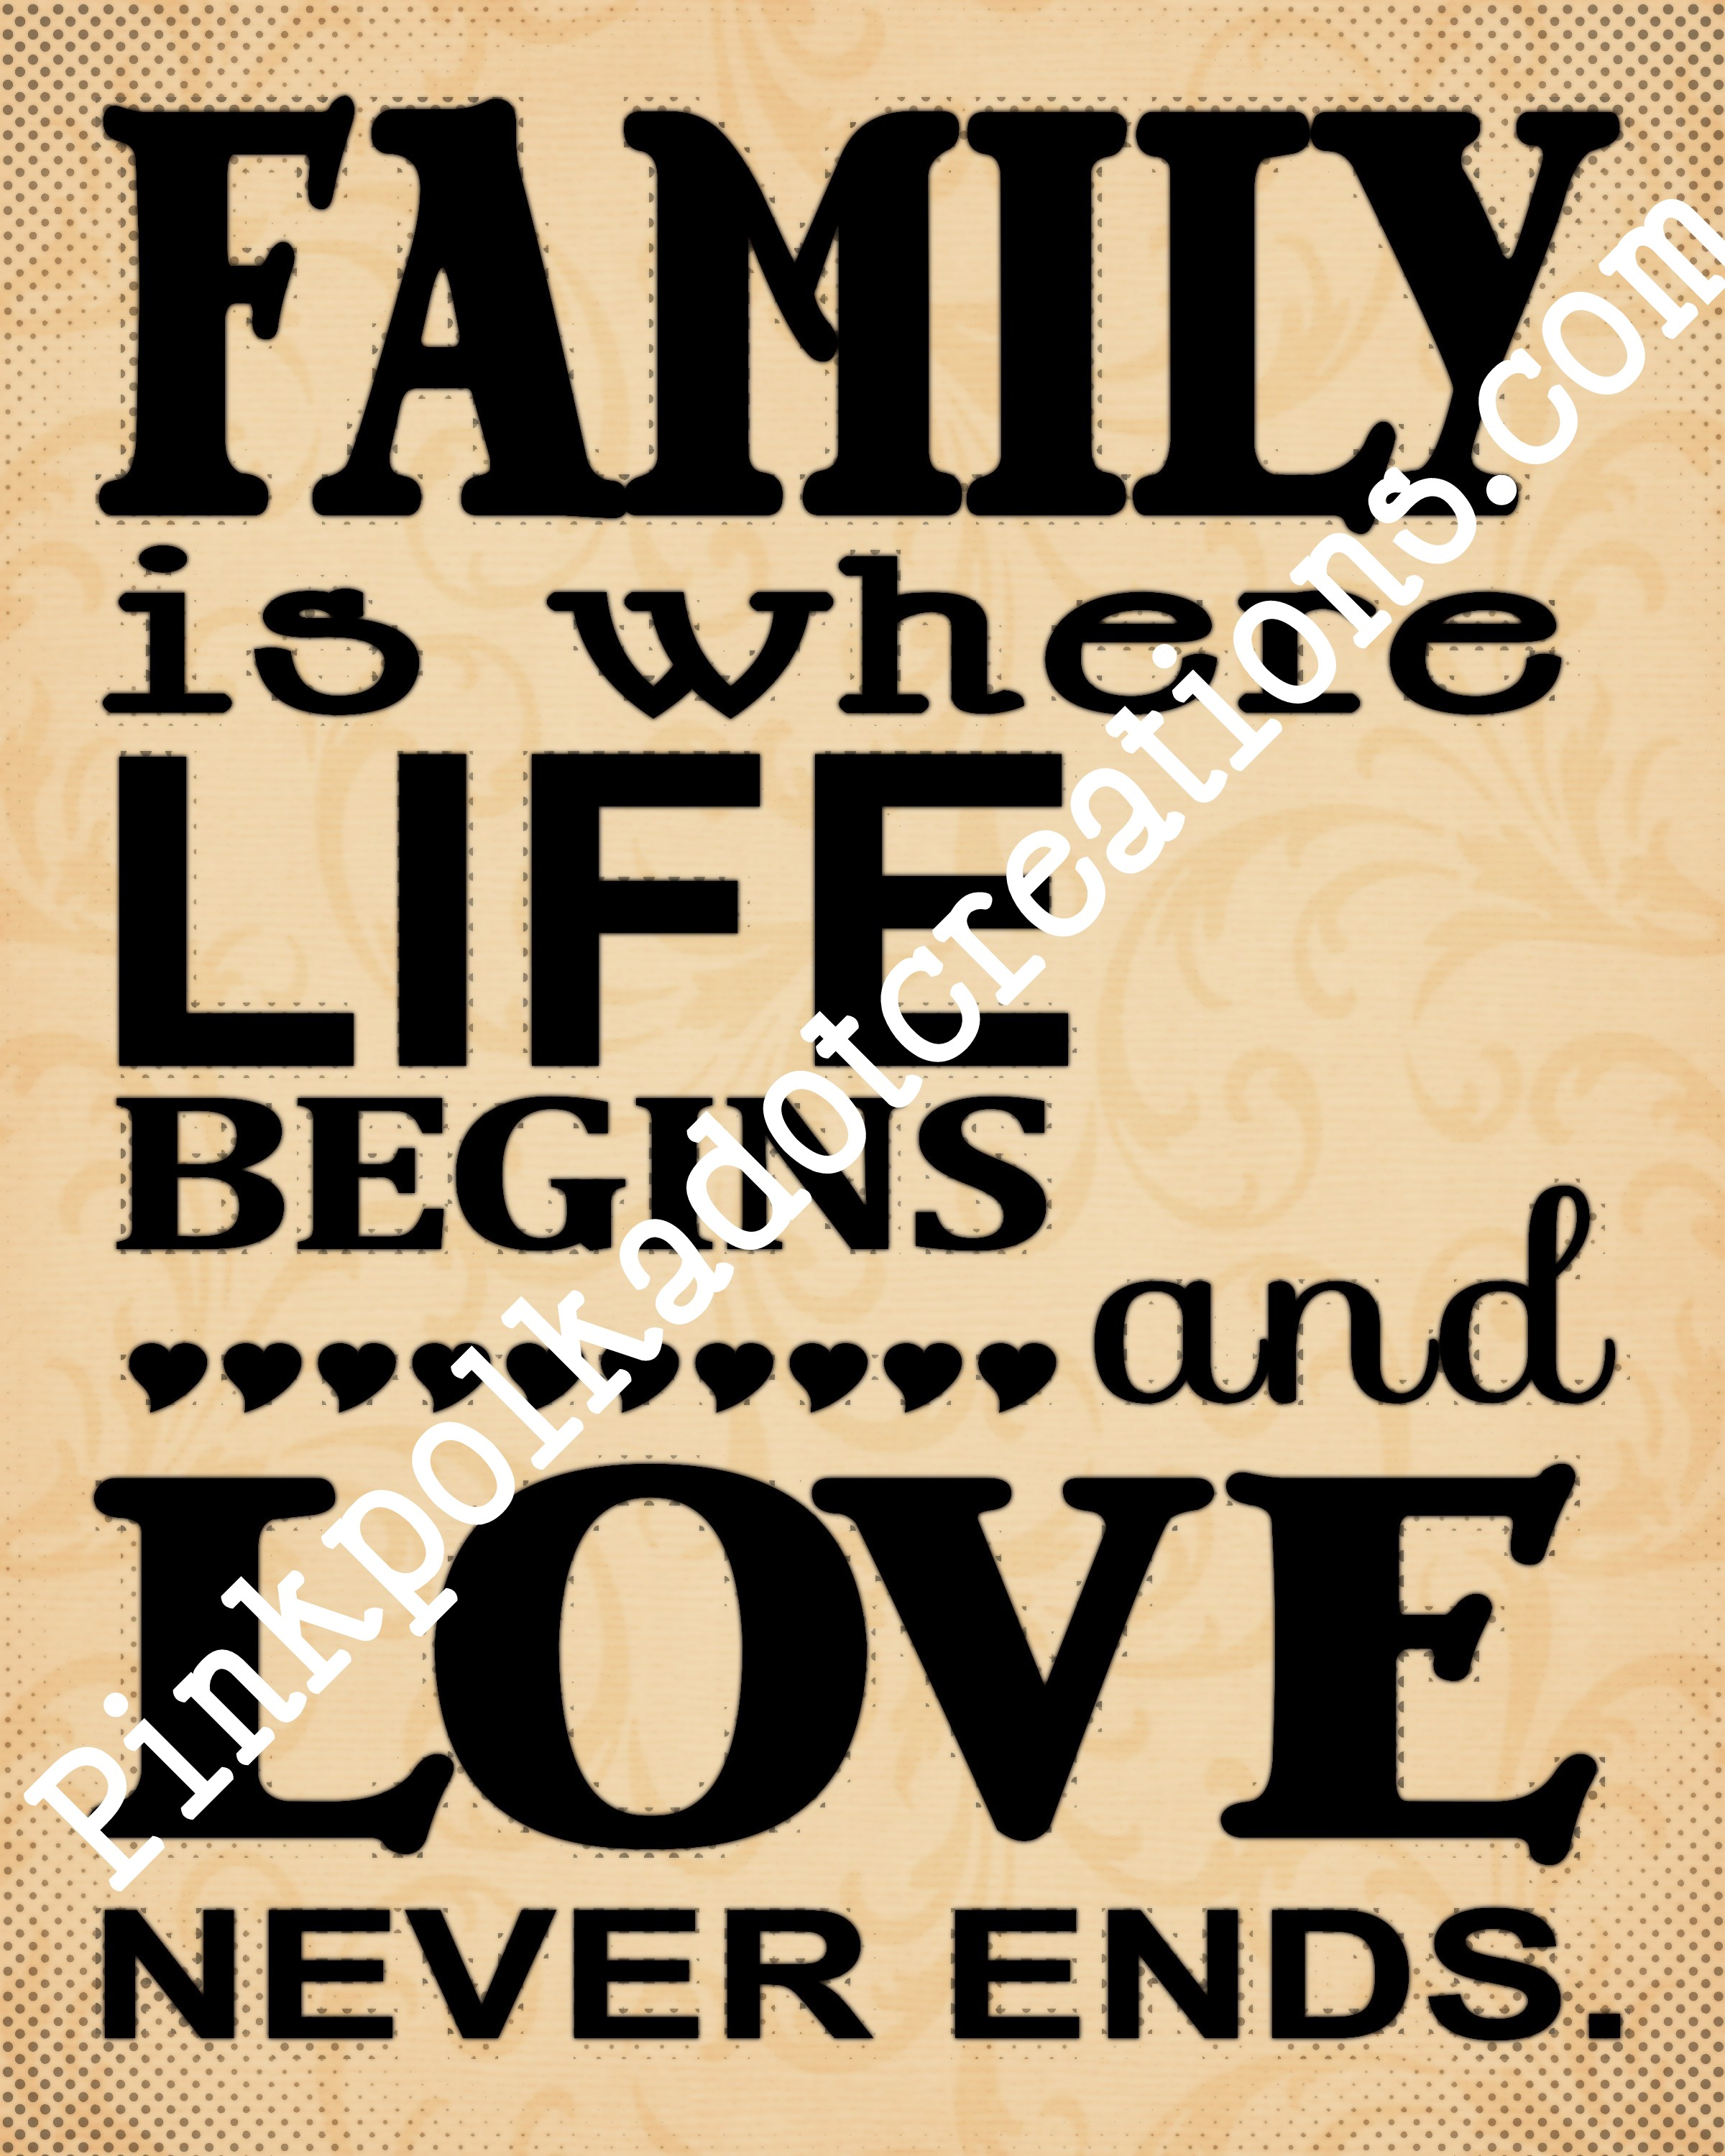 Family Life Quotes Family Quote Archives  Pink Polka Dot Creations